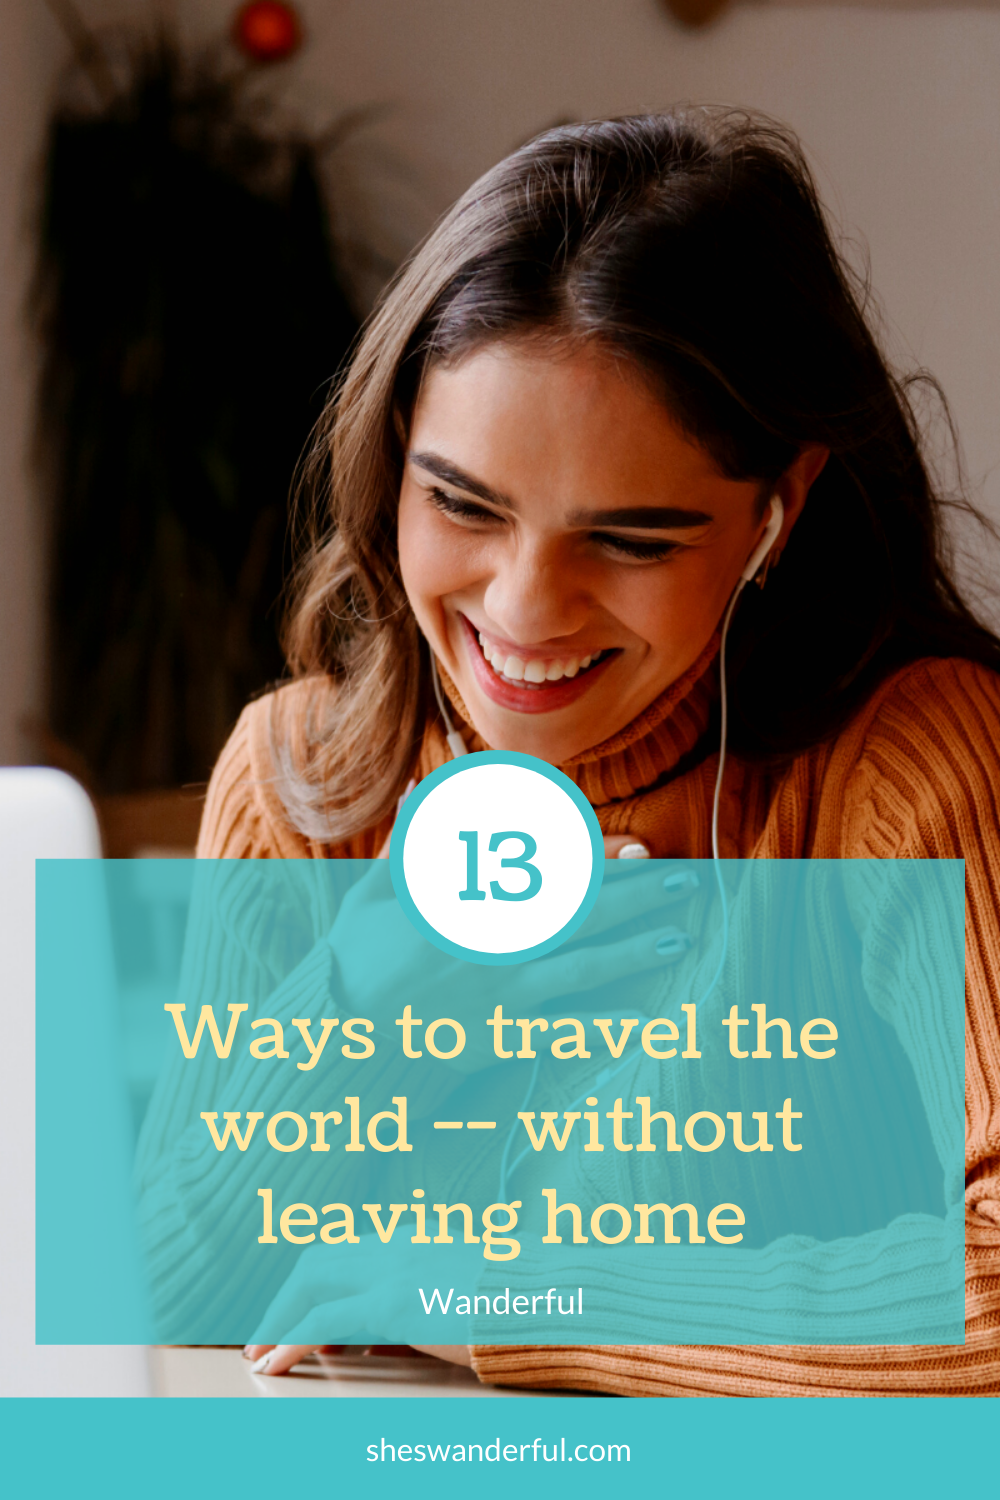 Virtual travel events so you can meet globally-minded women and share your love of travel, culture, language, and more! All events by Wanderful, the global women's travel community